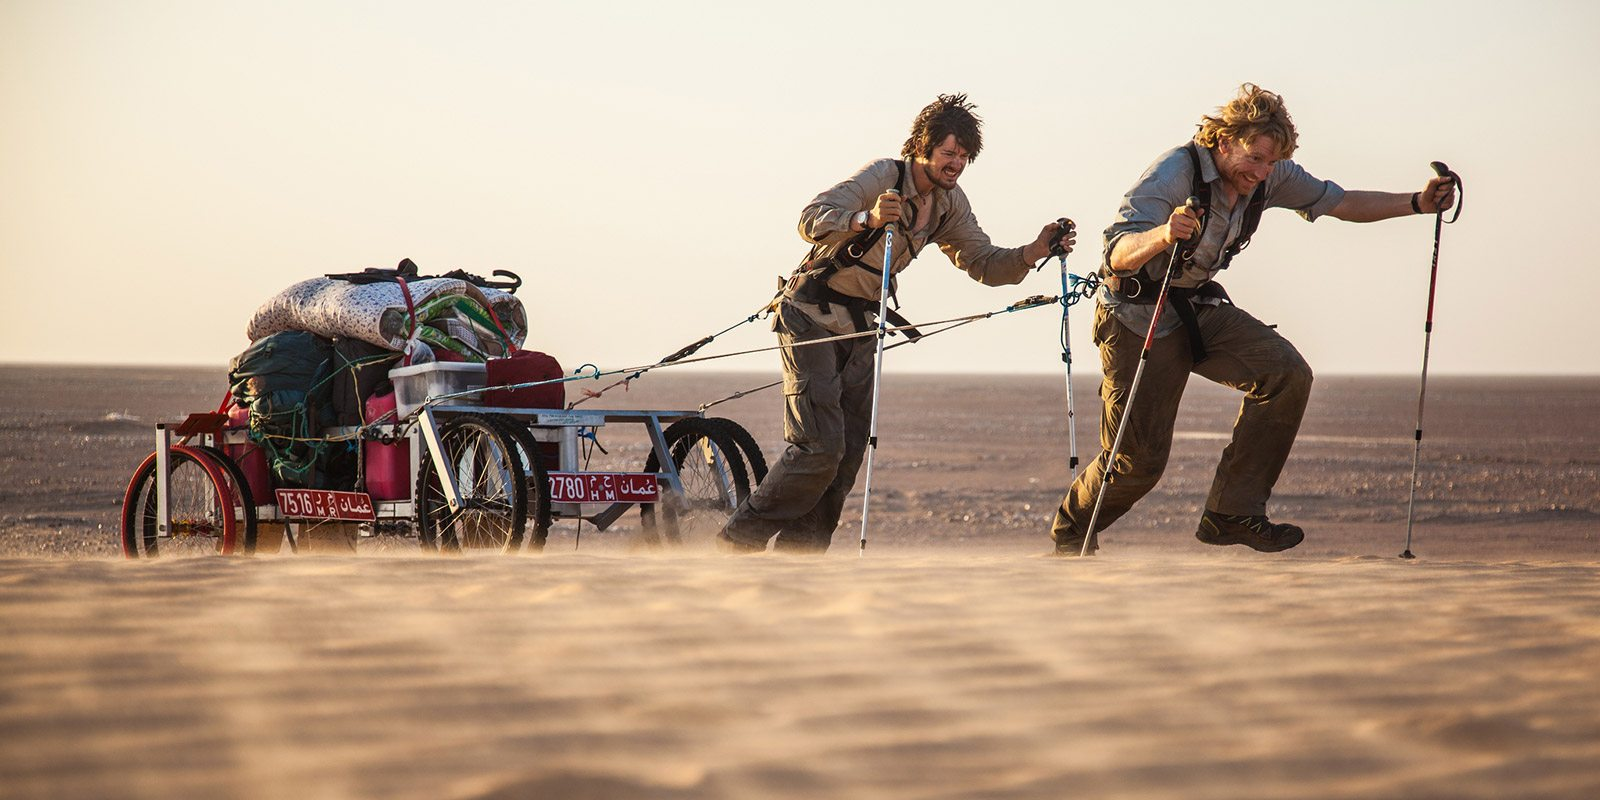 Hauling for 1000 miles on an expedition crossing the Empty Quarter